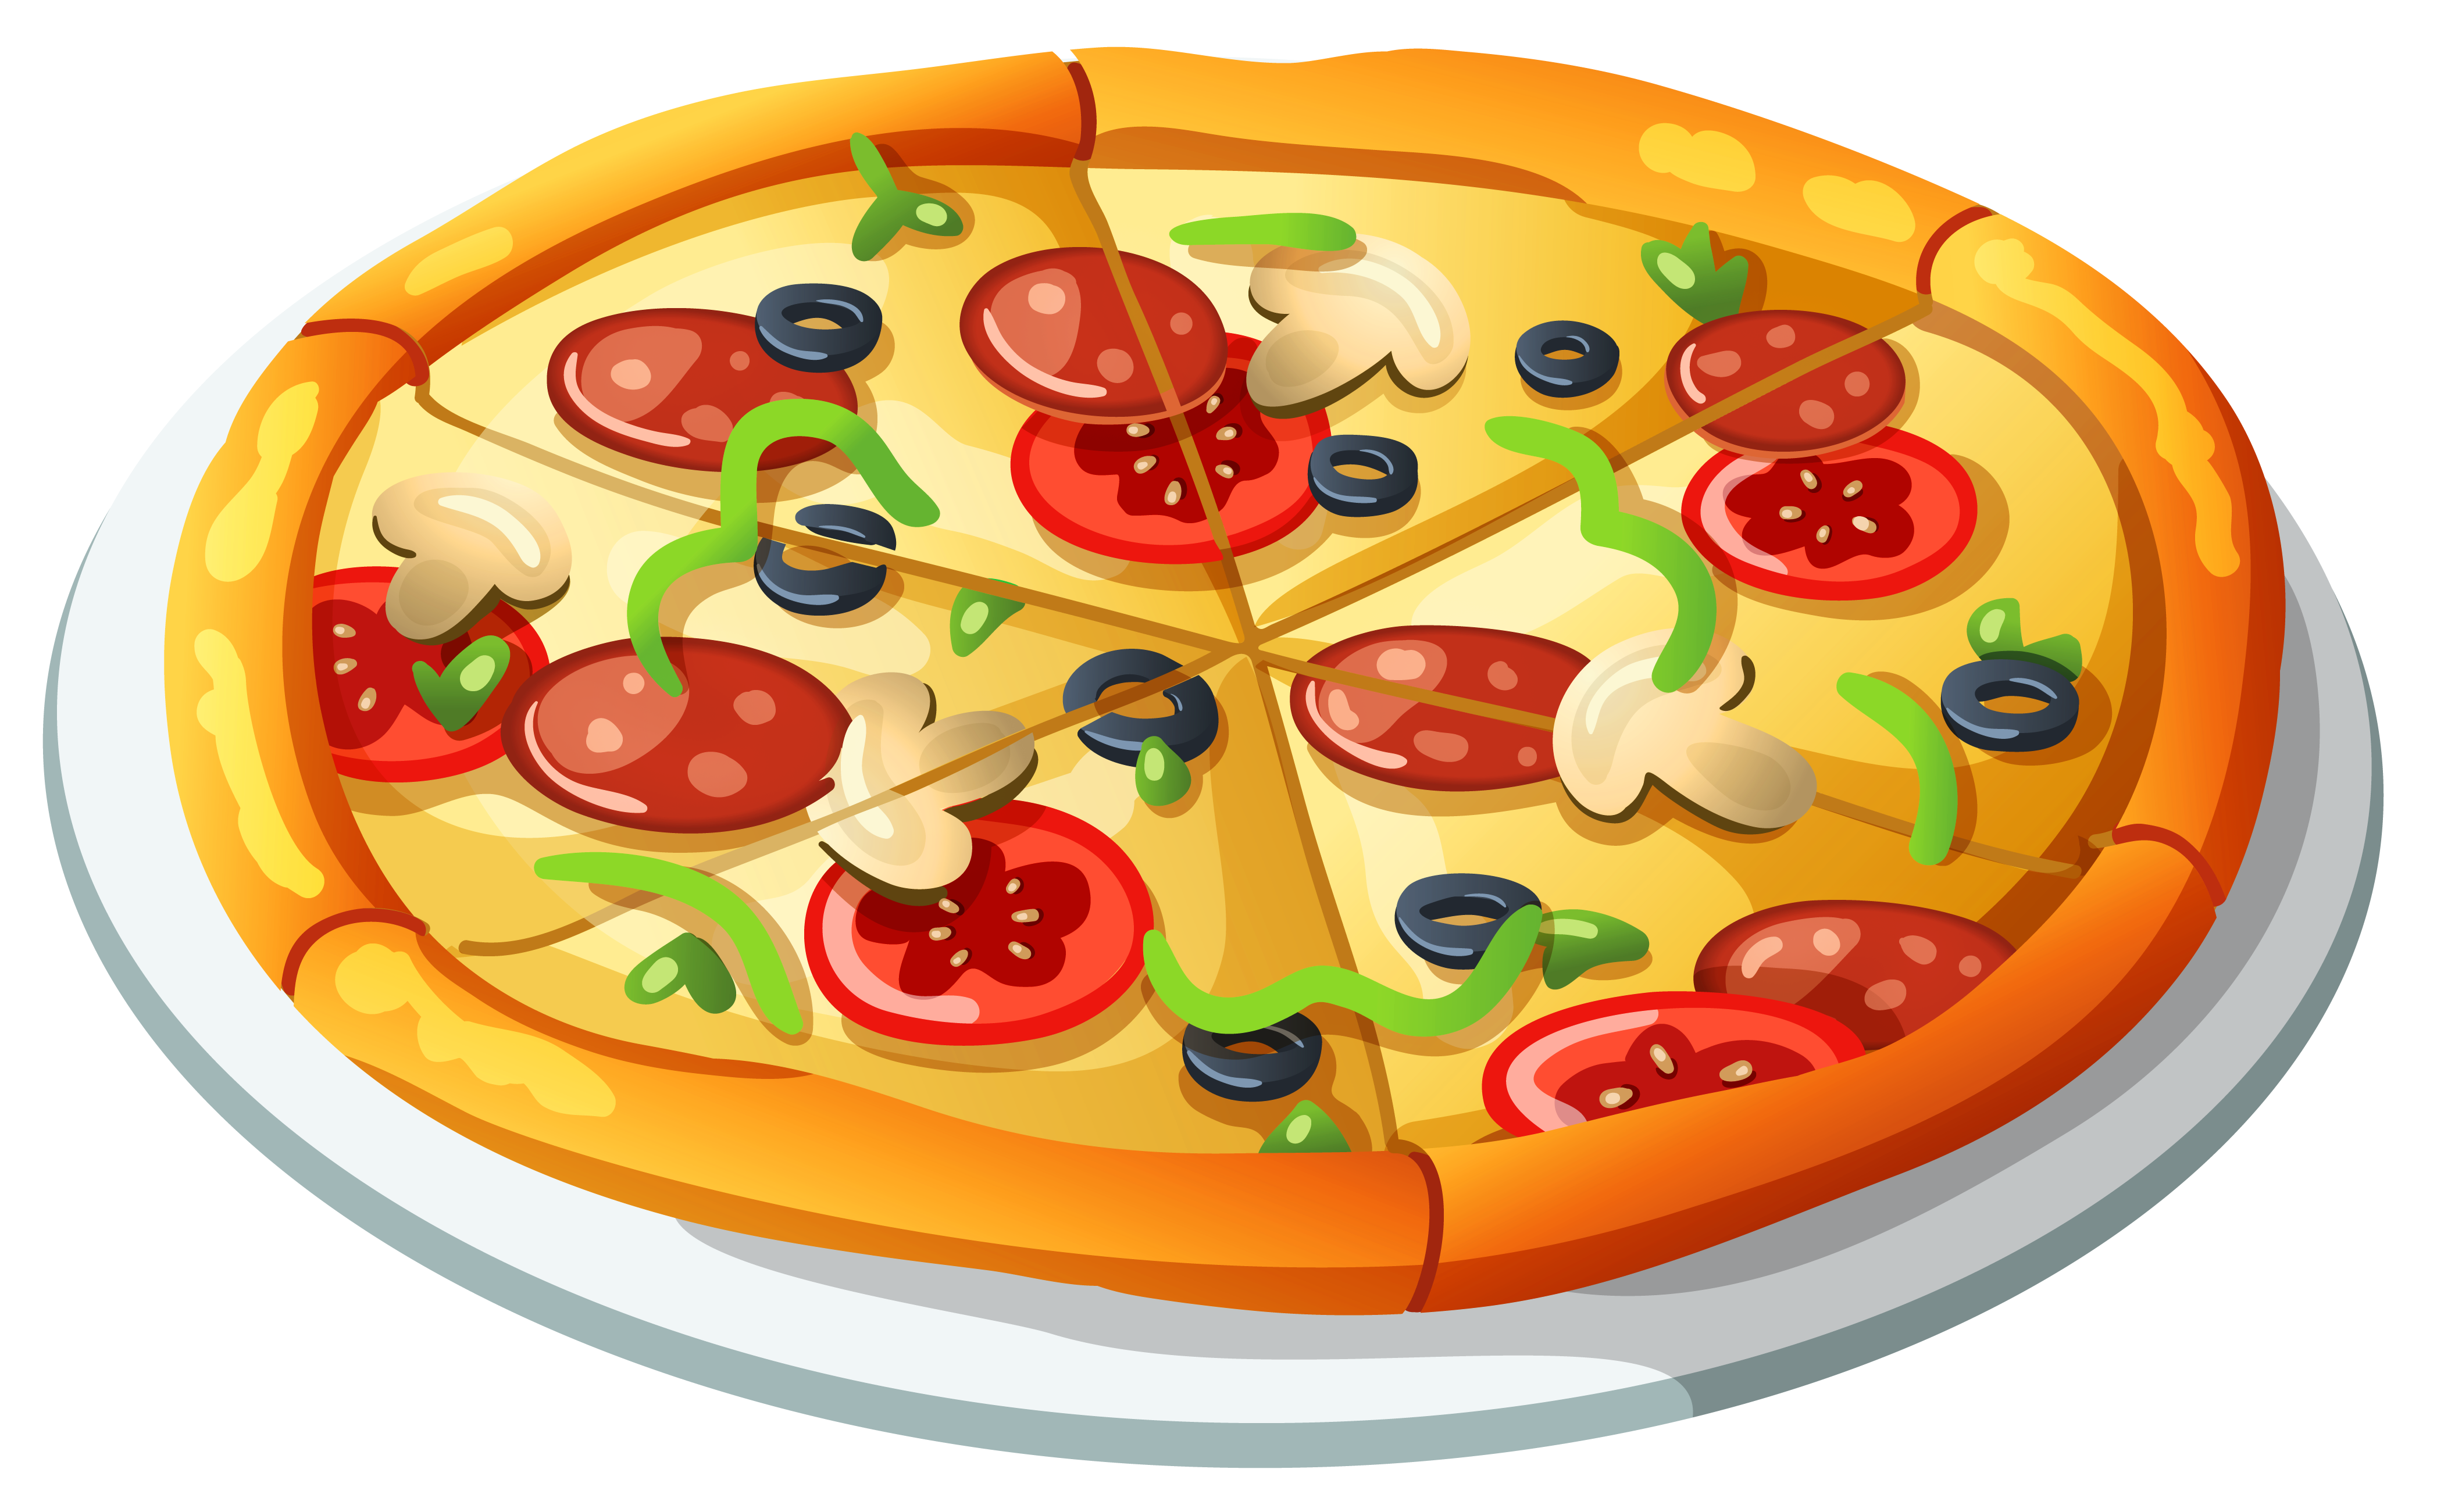 Pizza Clipart. Pizza Free To Use Clipart-pizza clipart. Pizza free to use cliparts 2-14